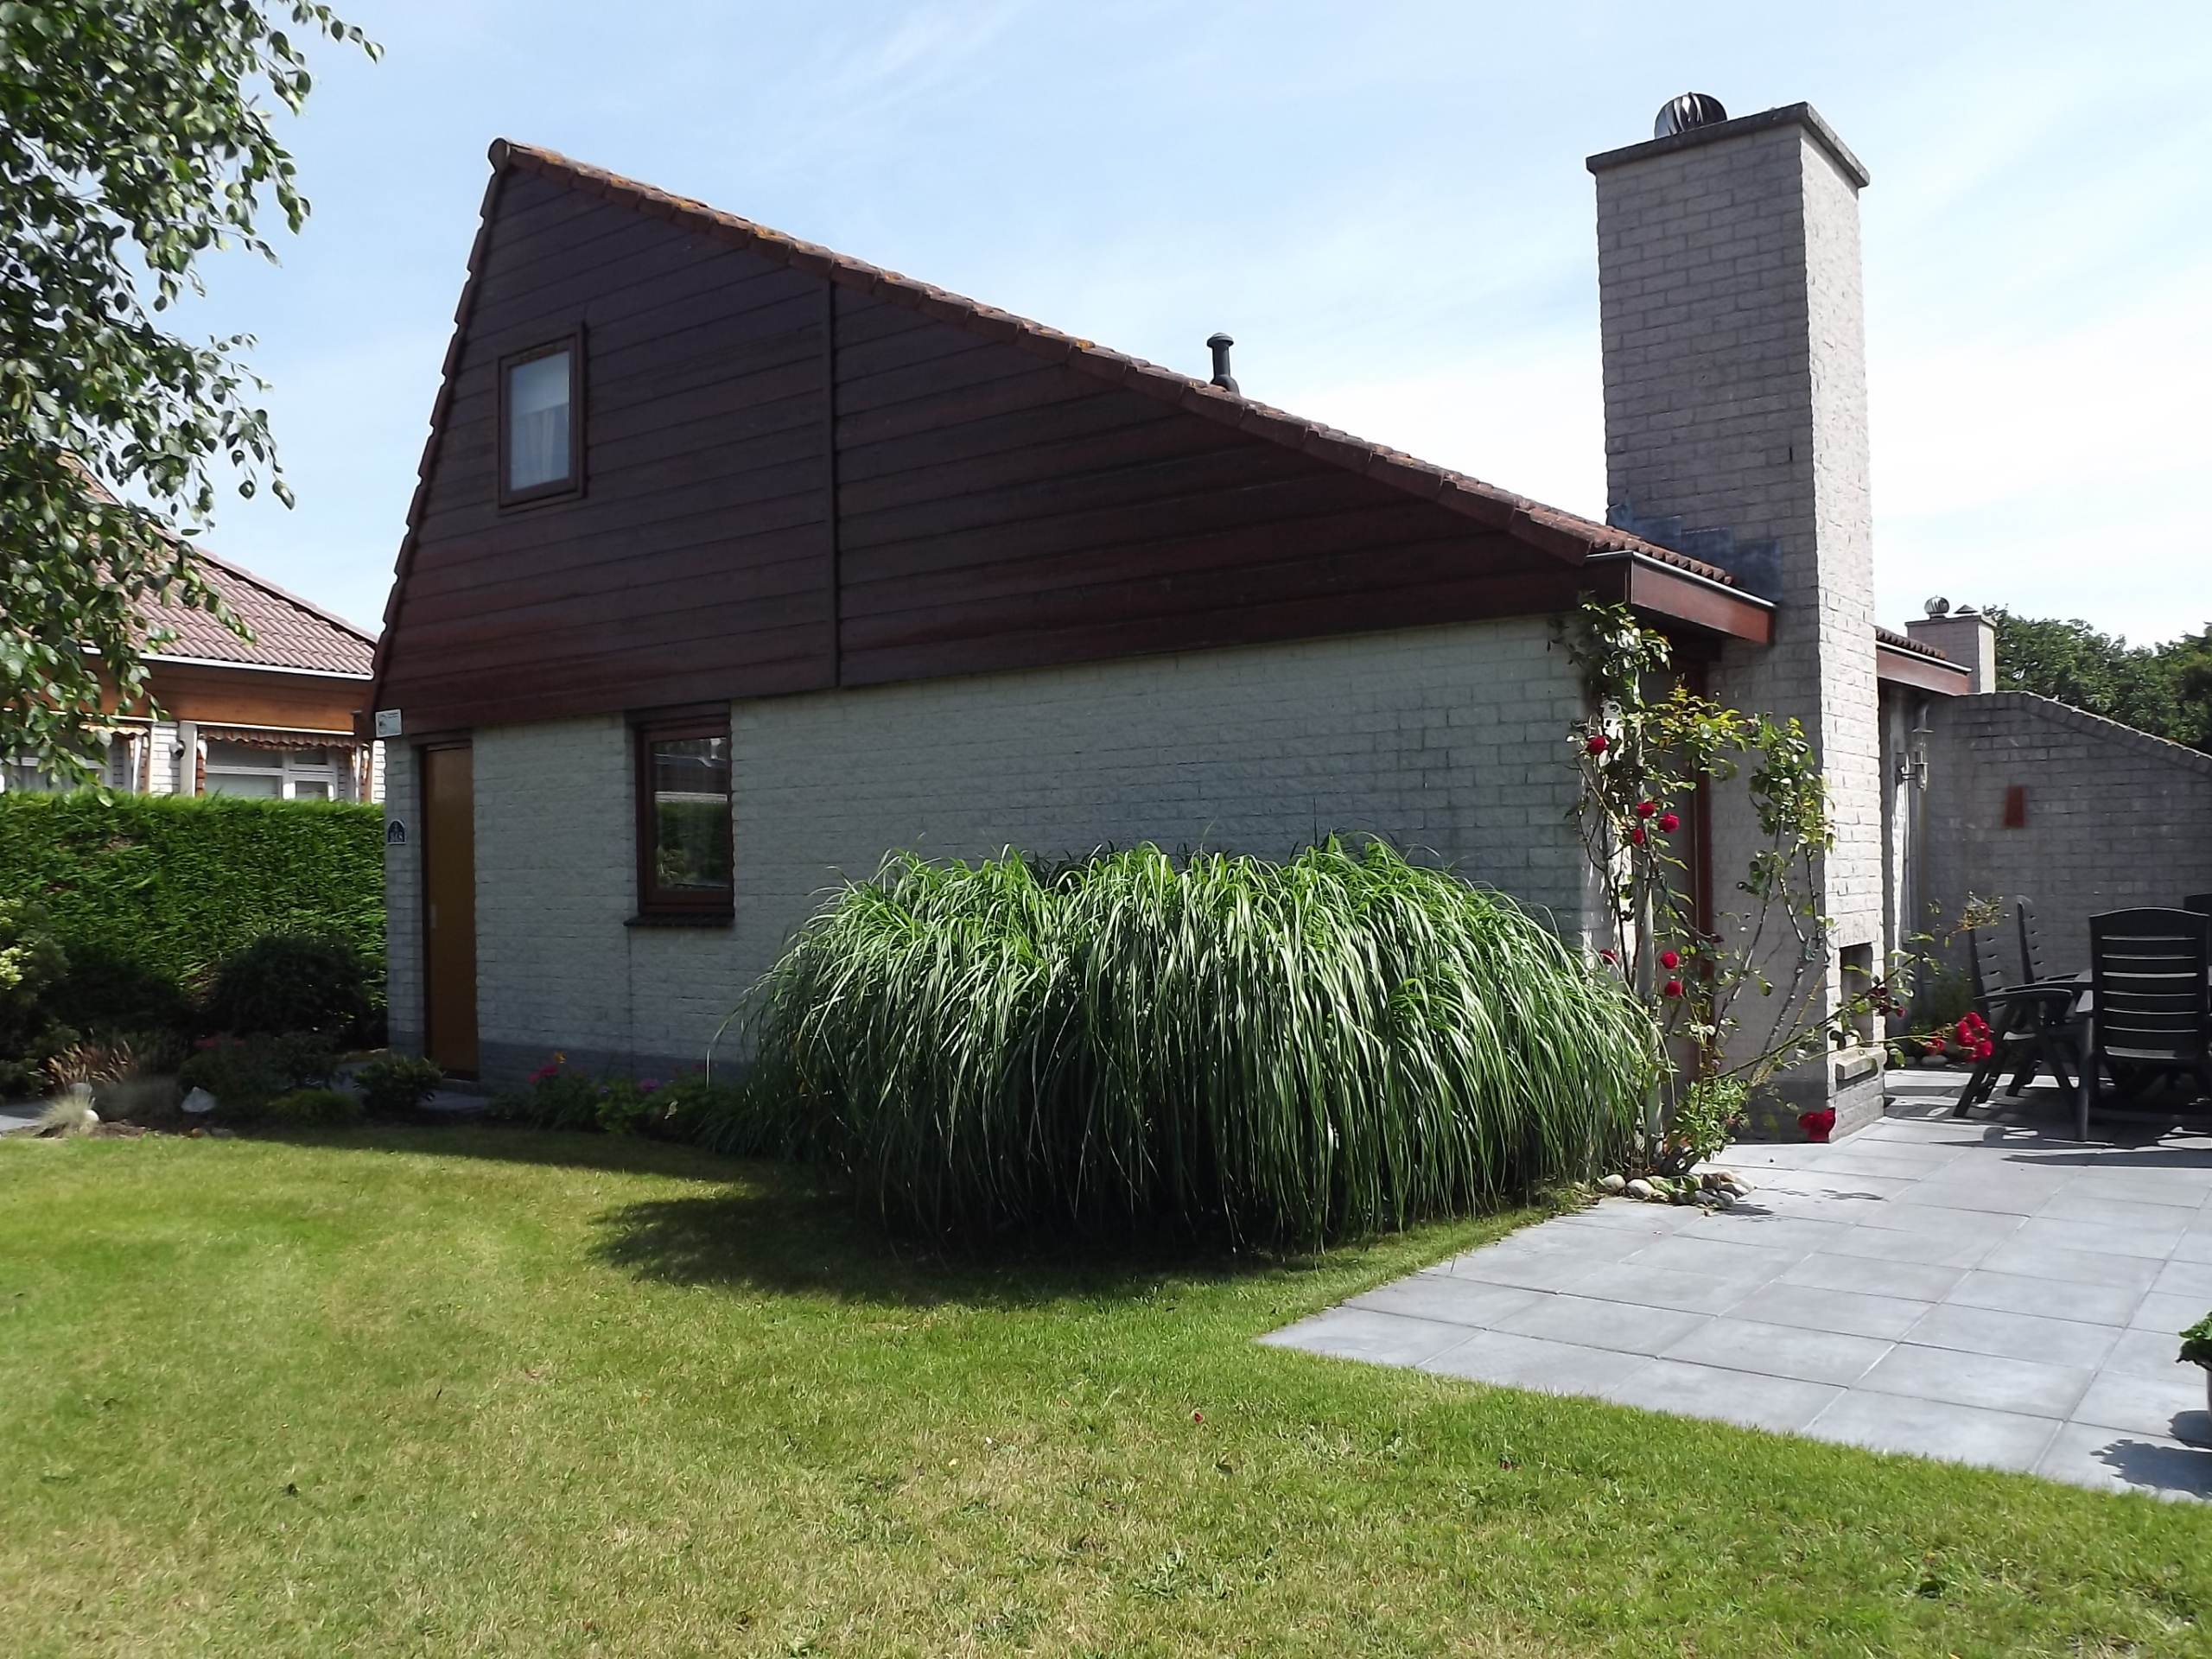 Detached holiday home with enclosed garden in the forest